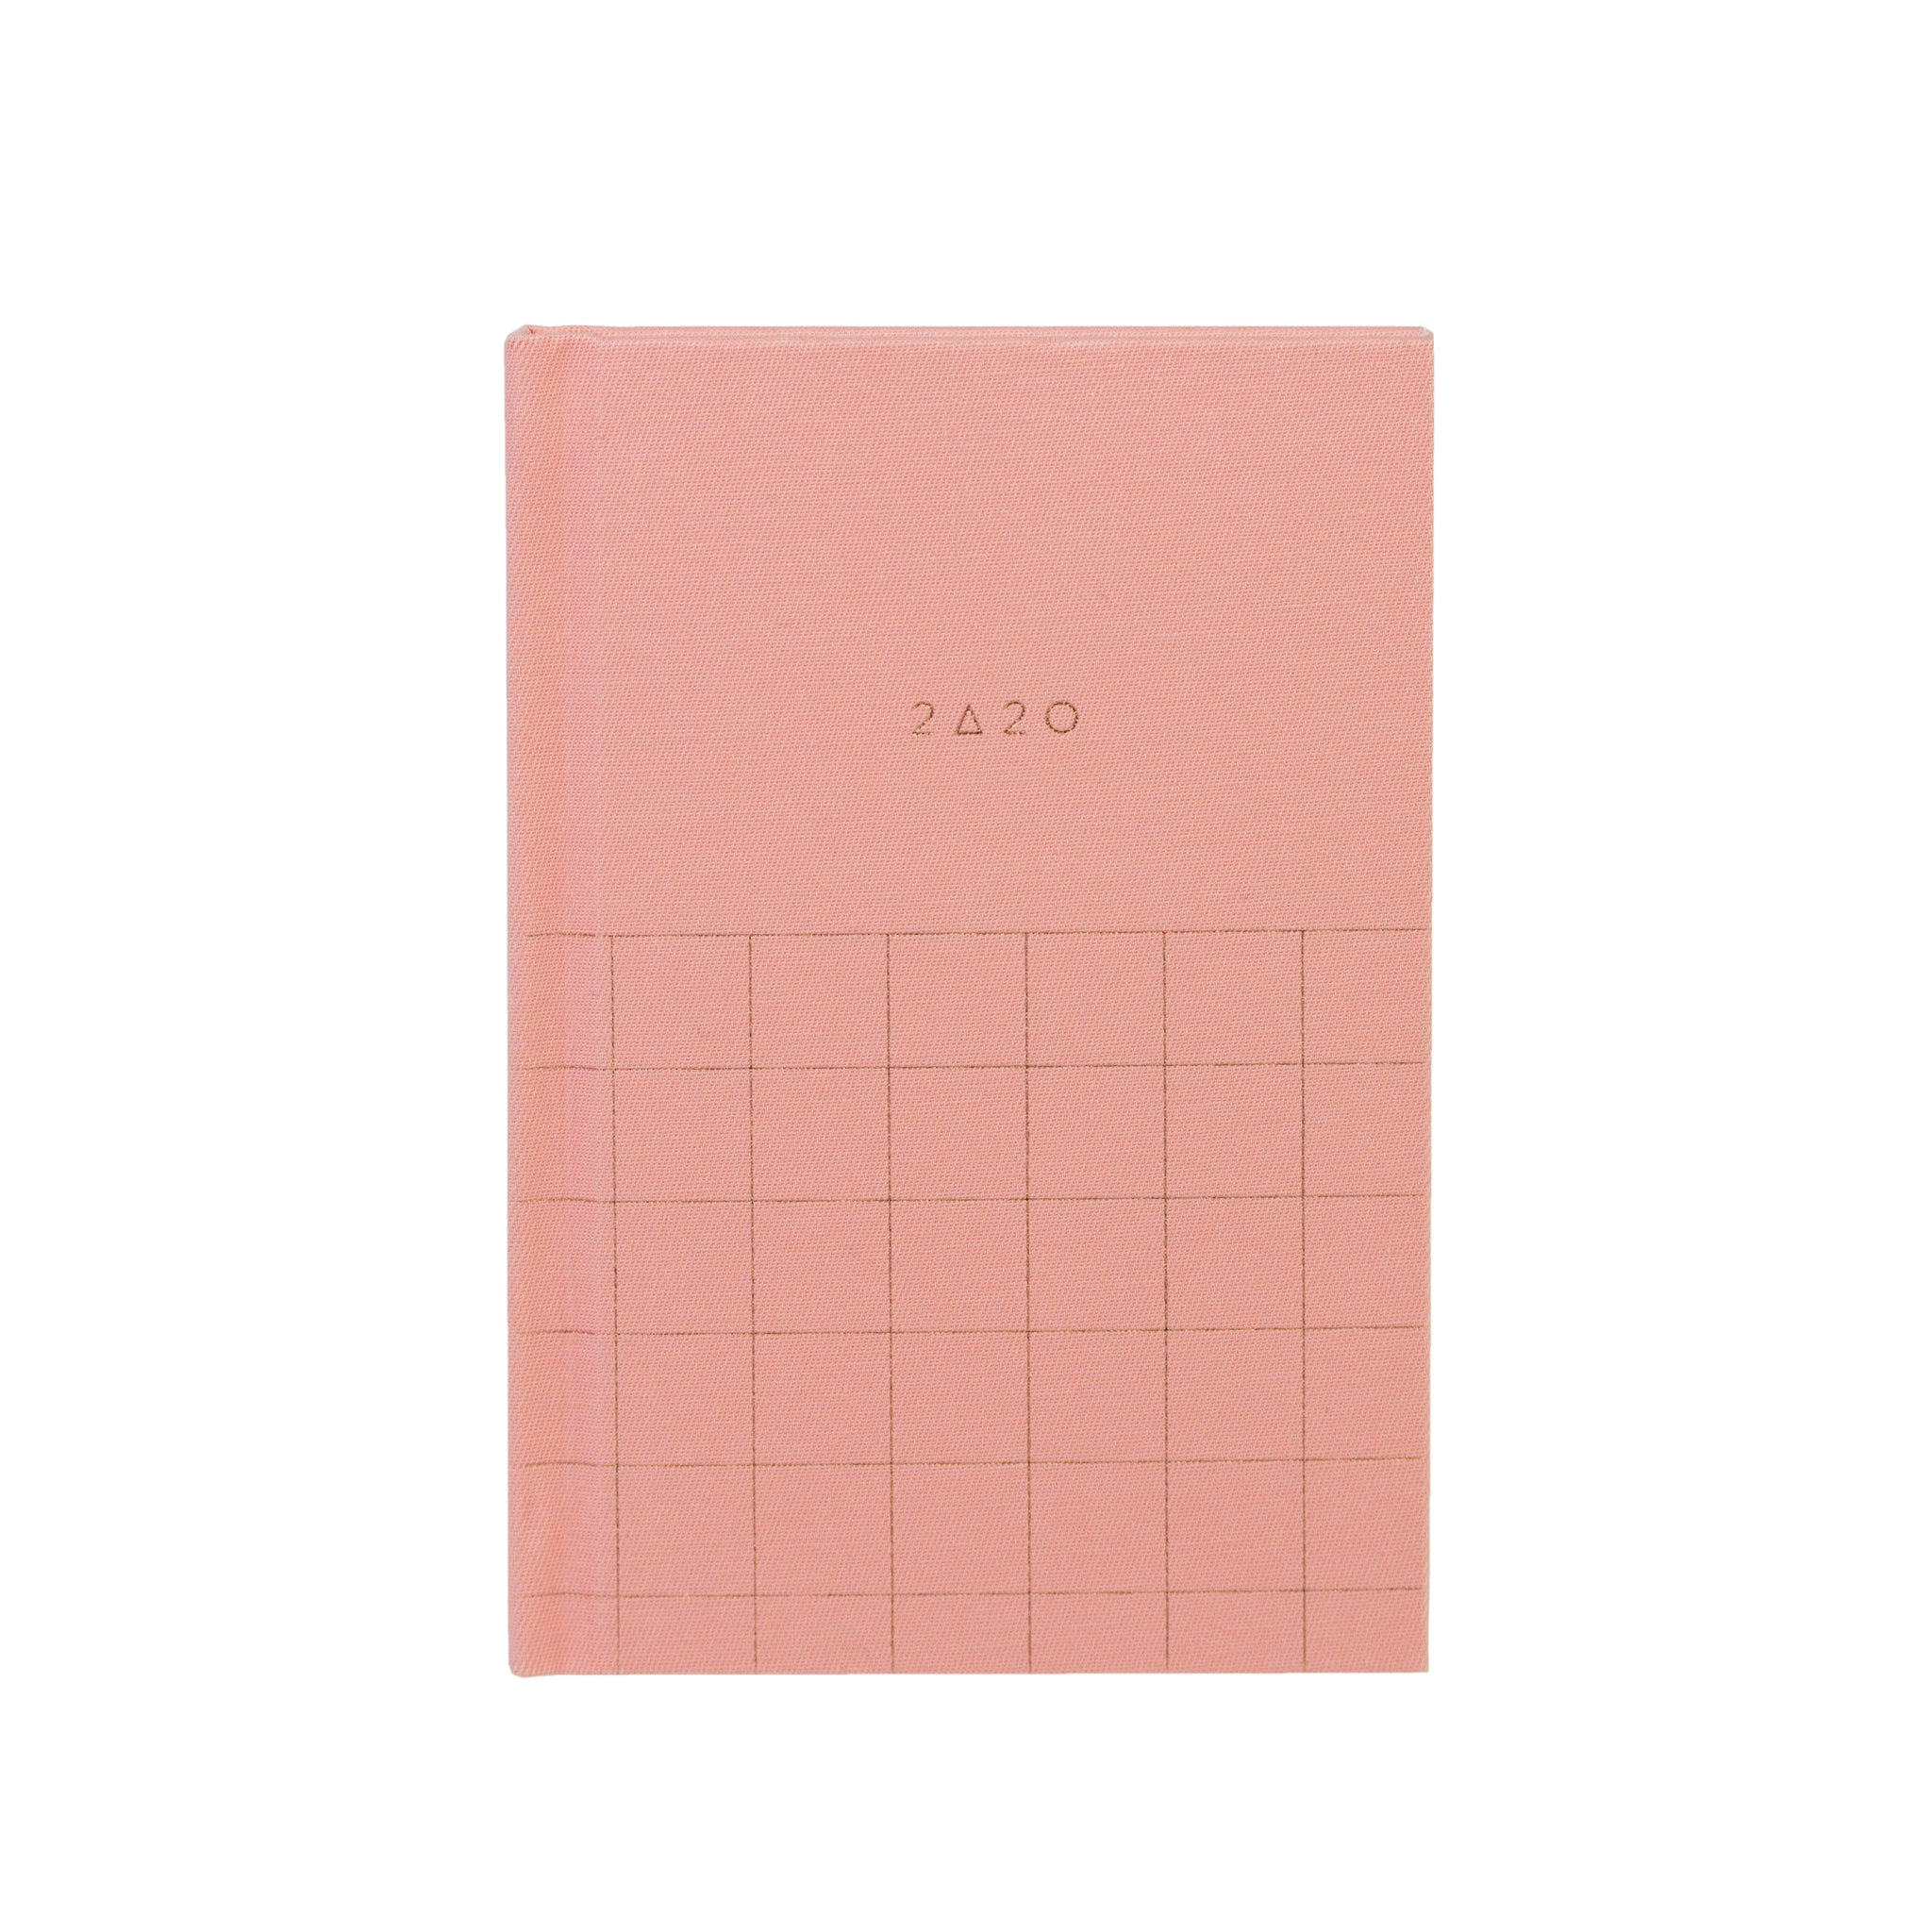 2020 (12M) SMTWTFS FABRIC POCKET PLANNER CORAL PINK - Hadron Epoch